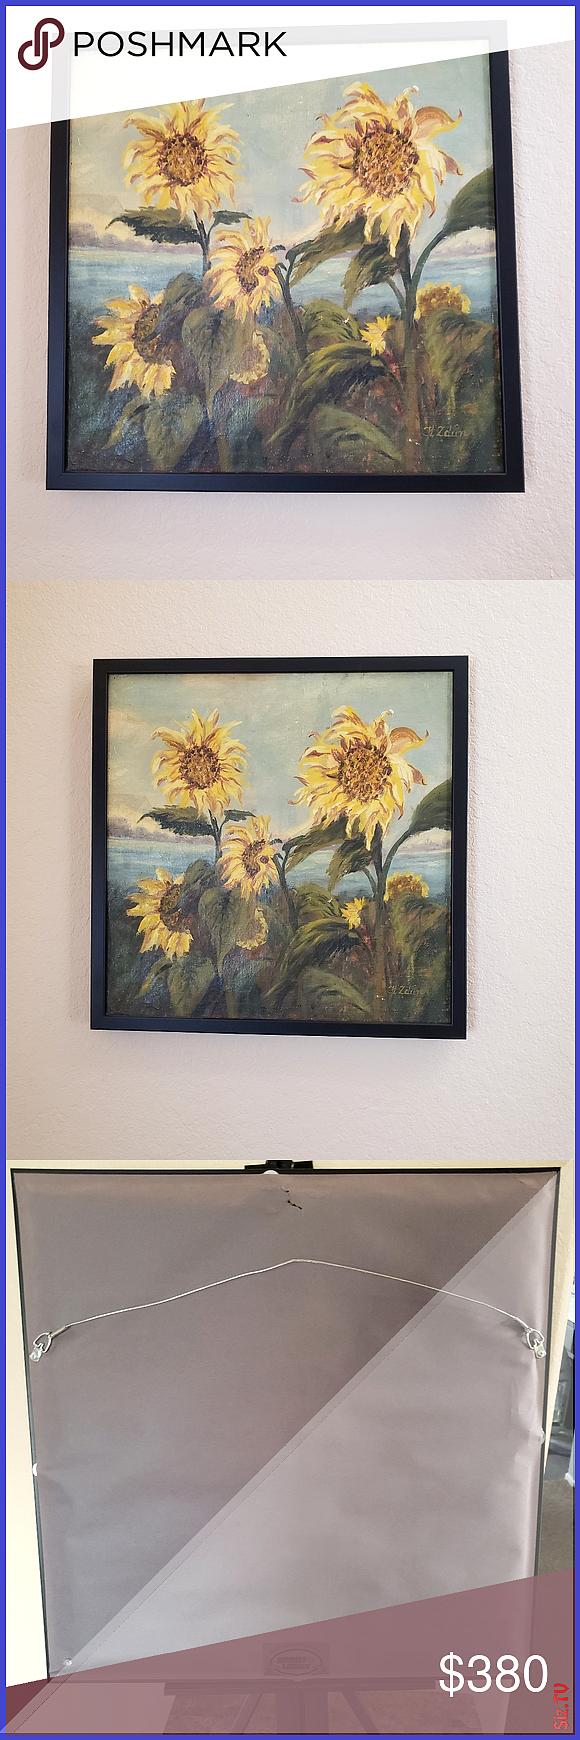 Vintage 8090 s oil painting 21 25 8243 21 25 8243 Beautiful sunflowers vintage oil painting on canvas Painted by my 86 years old mother many years ago Vintage 8090 s oil...